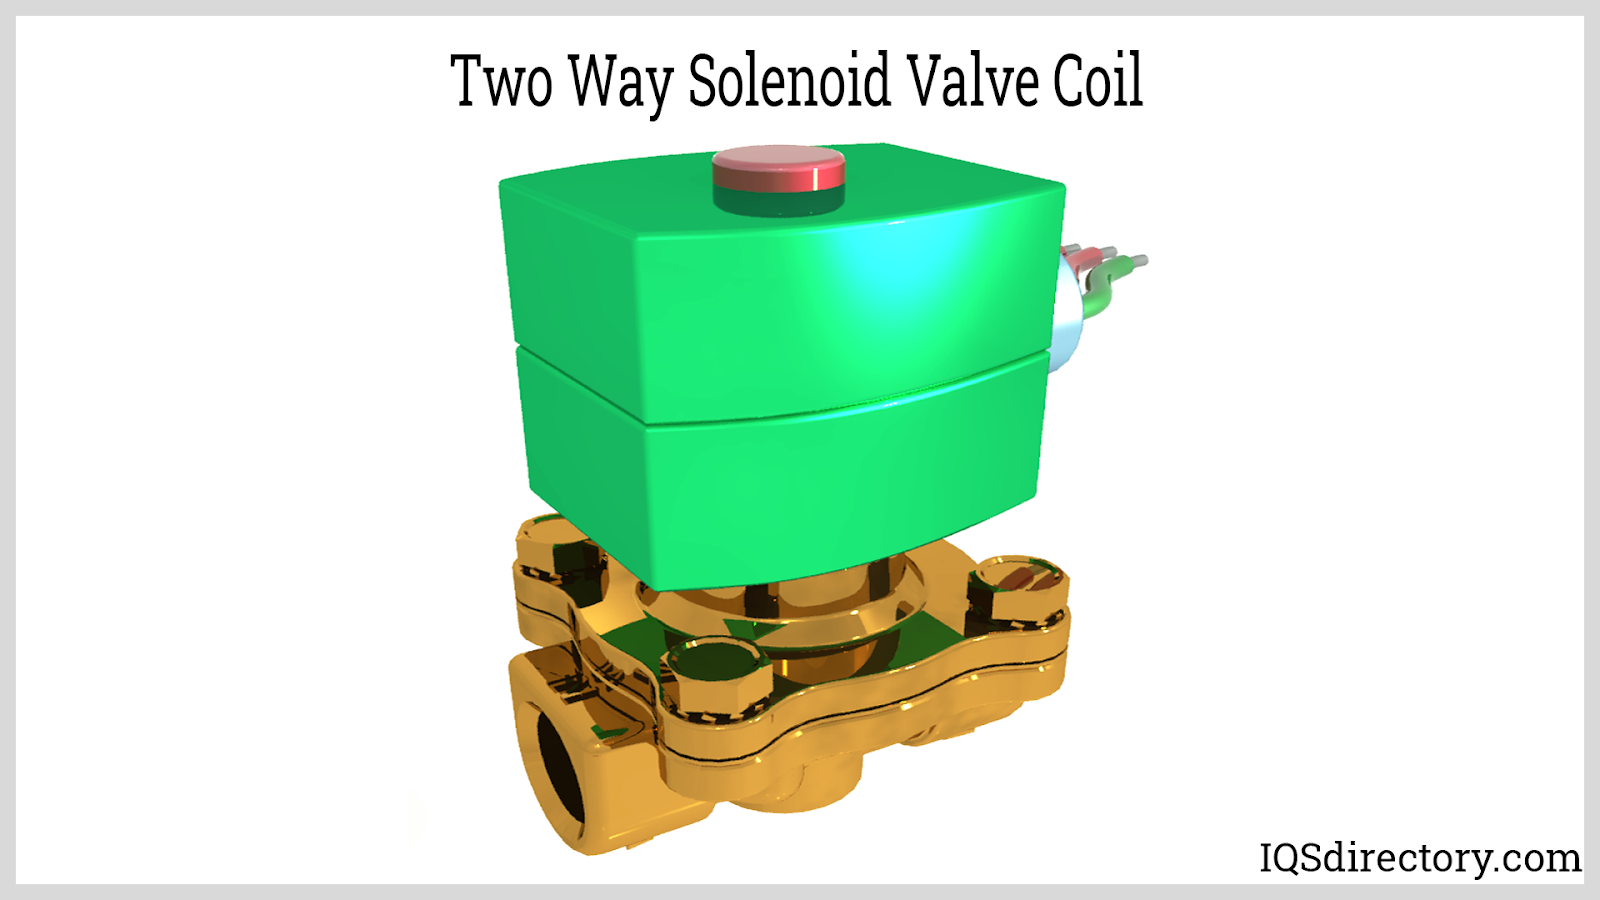 Two Way Solenoid Valve Coil